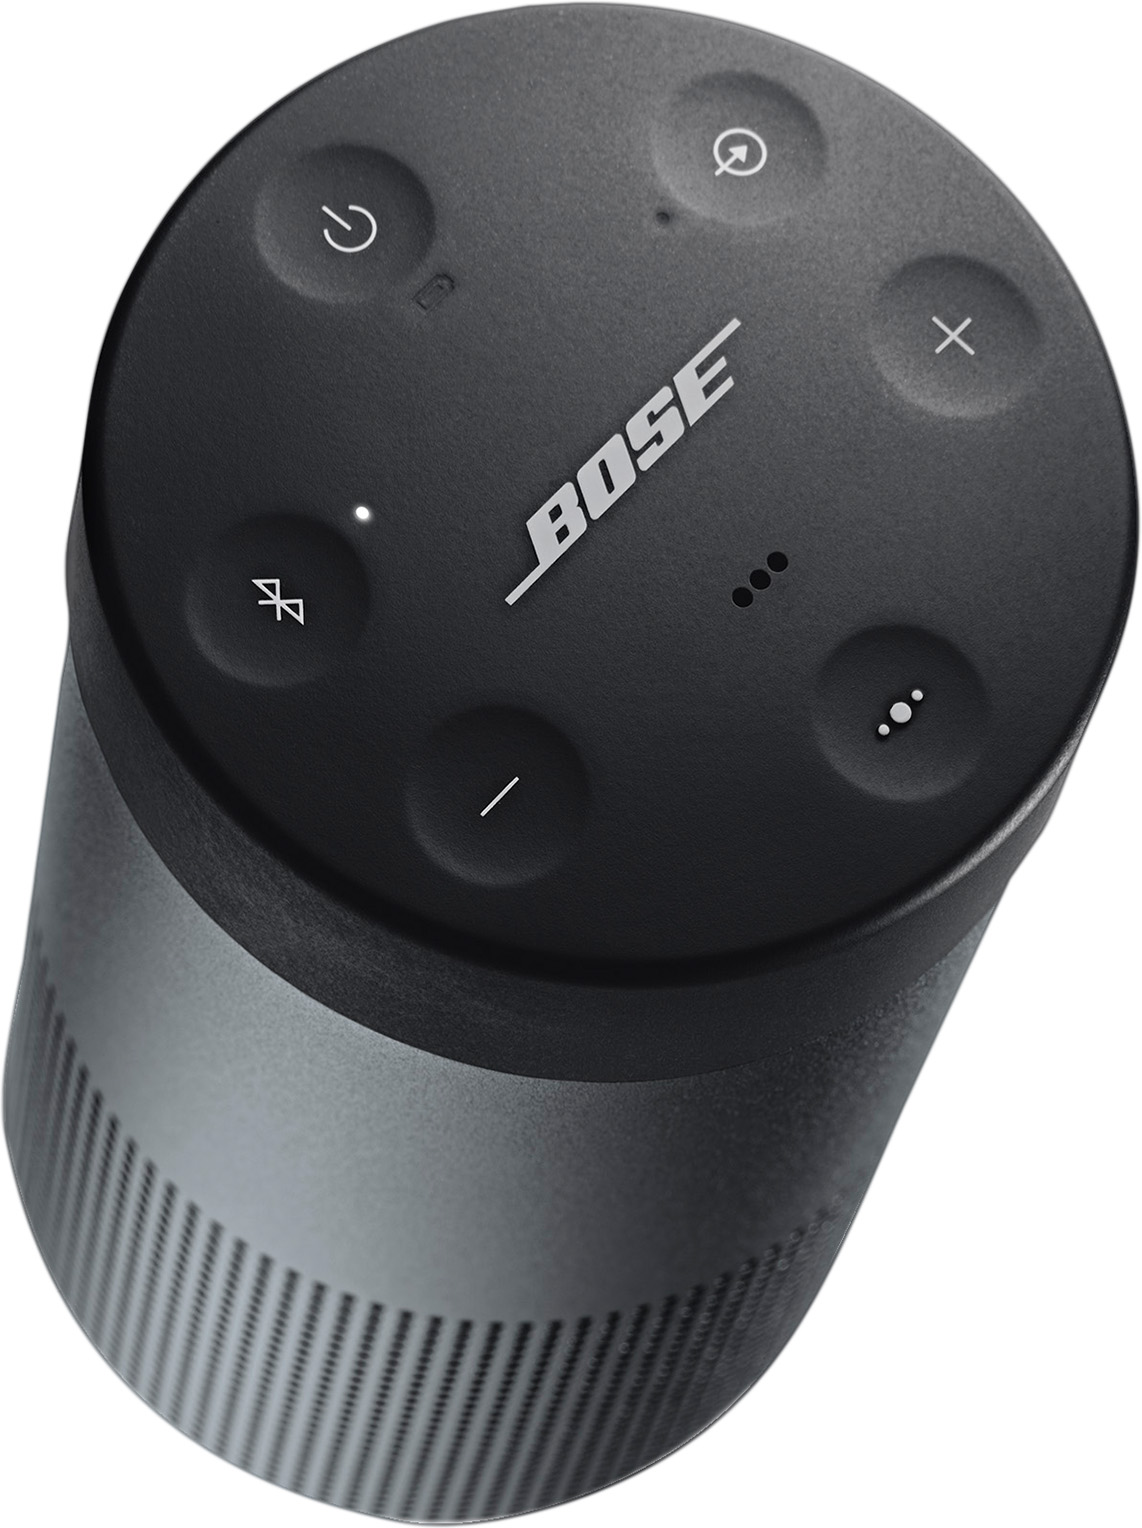 Bose SoundLink Revolve Bluetooth Speaker Deal